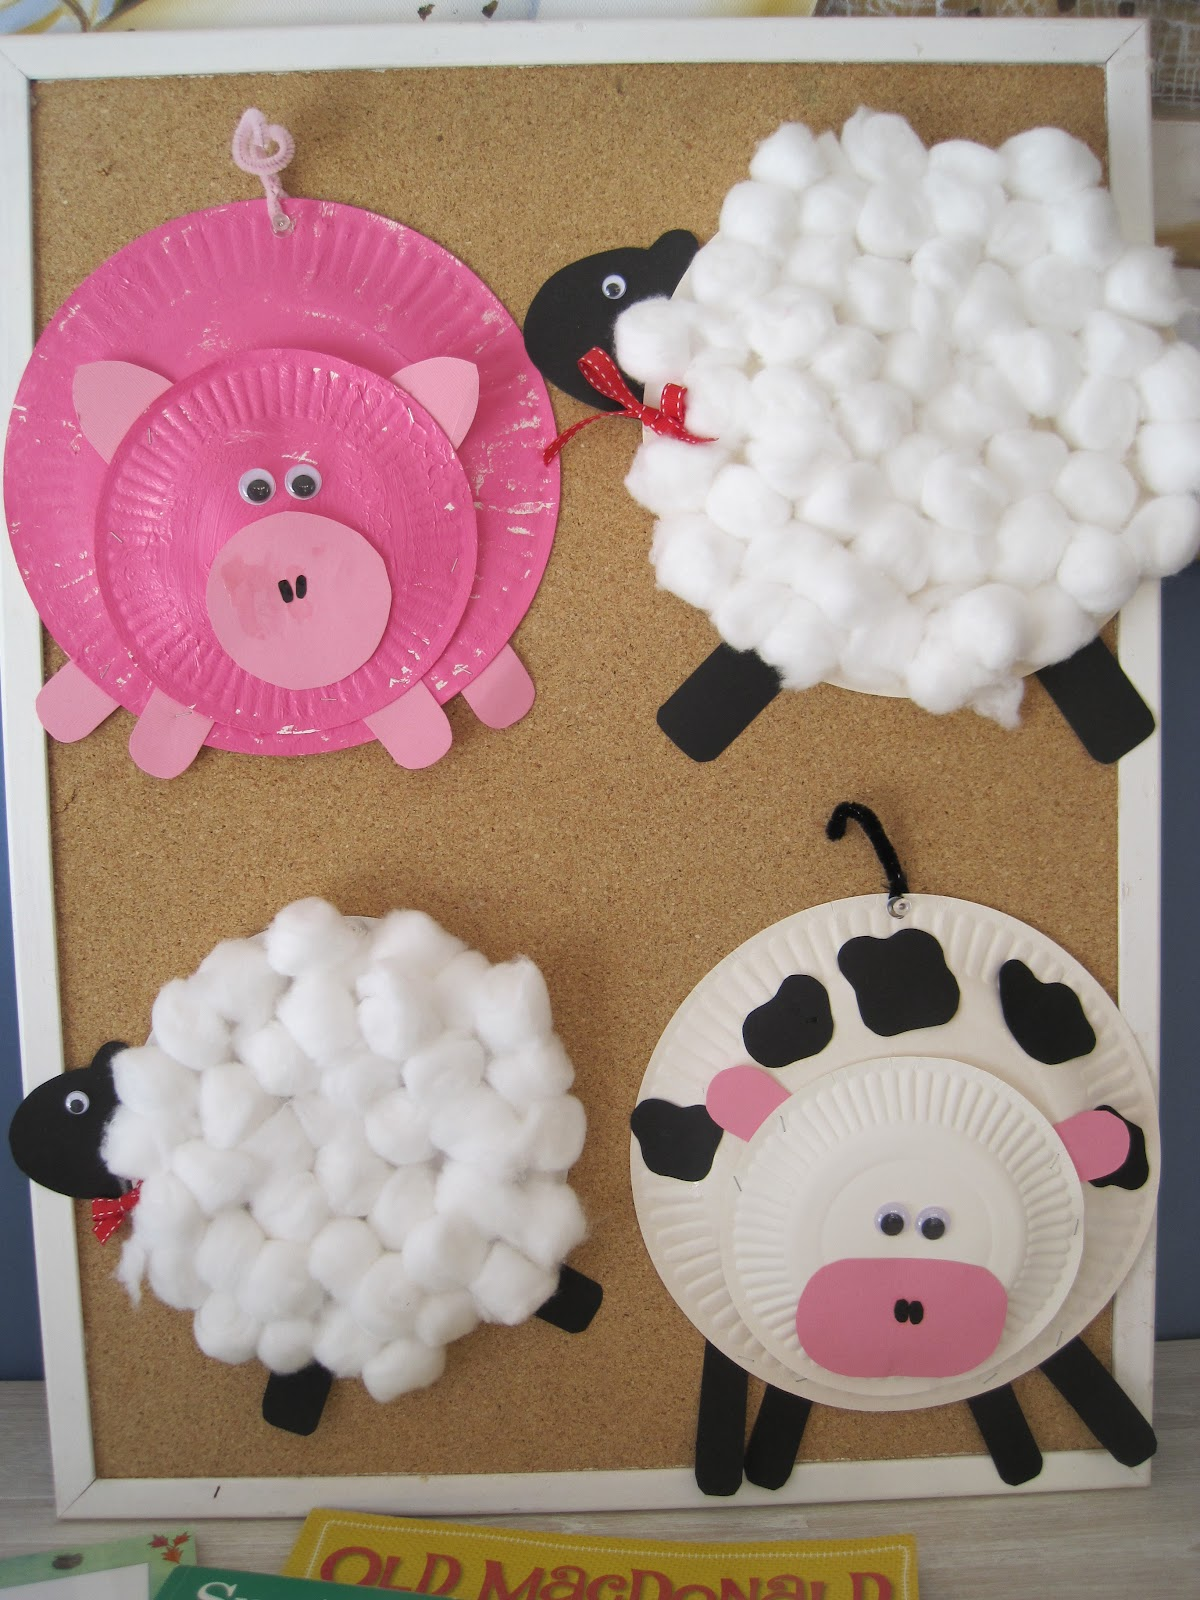 Early language skills through play.......: Farmyard craft